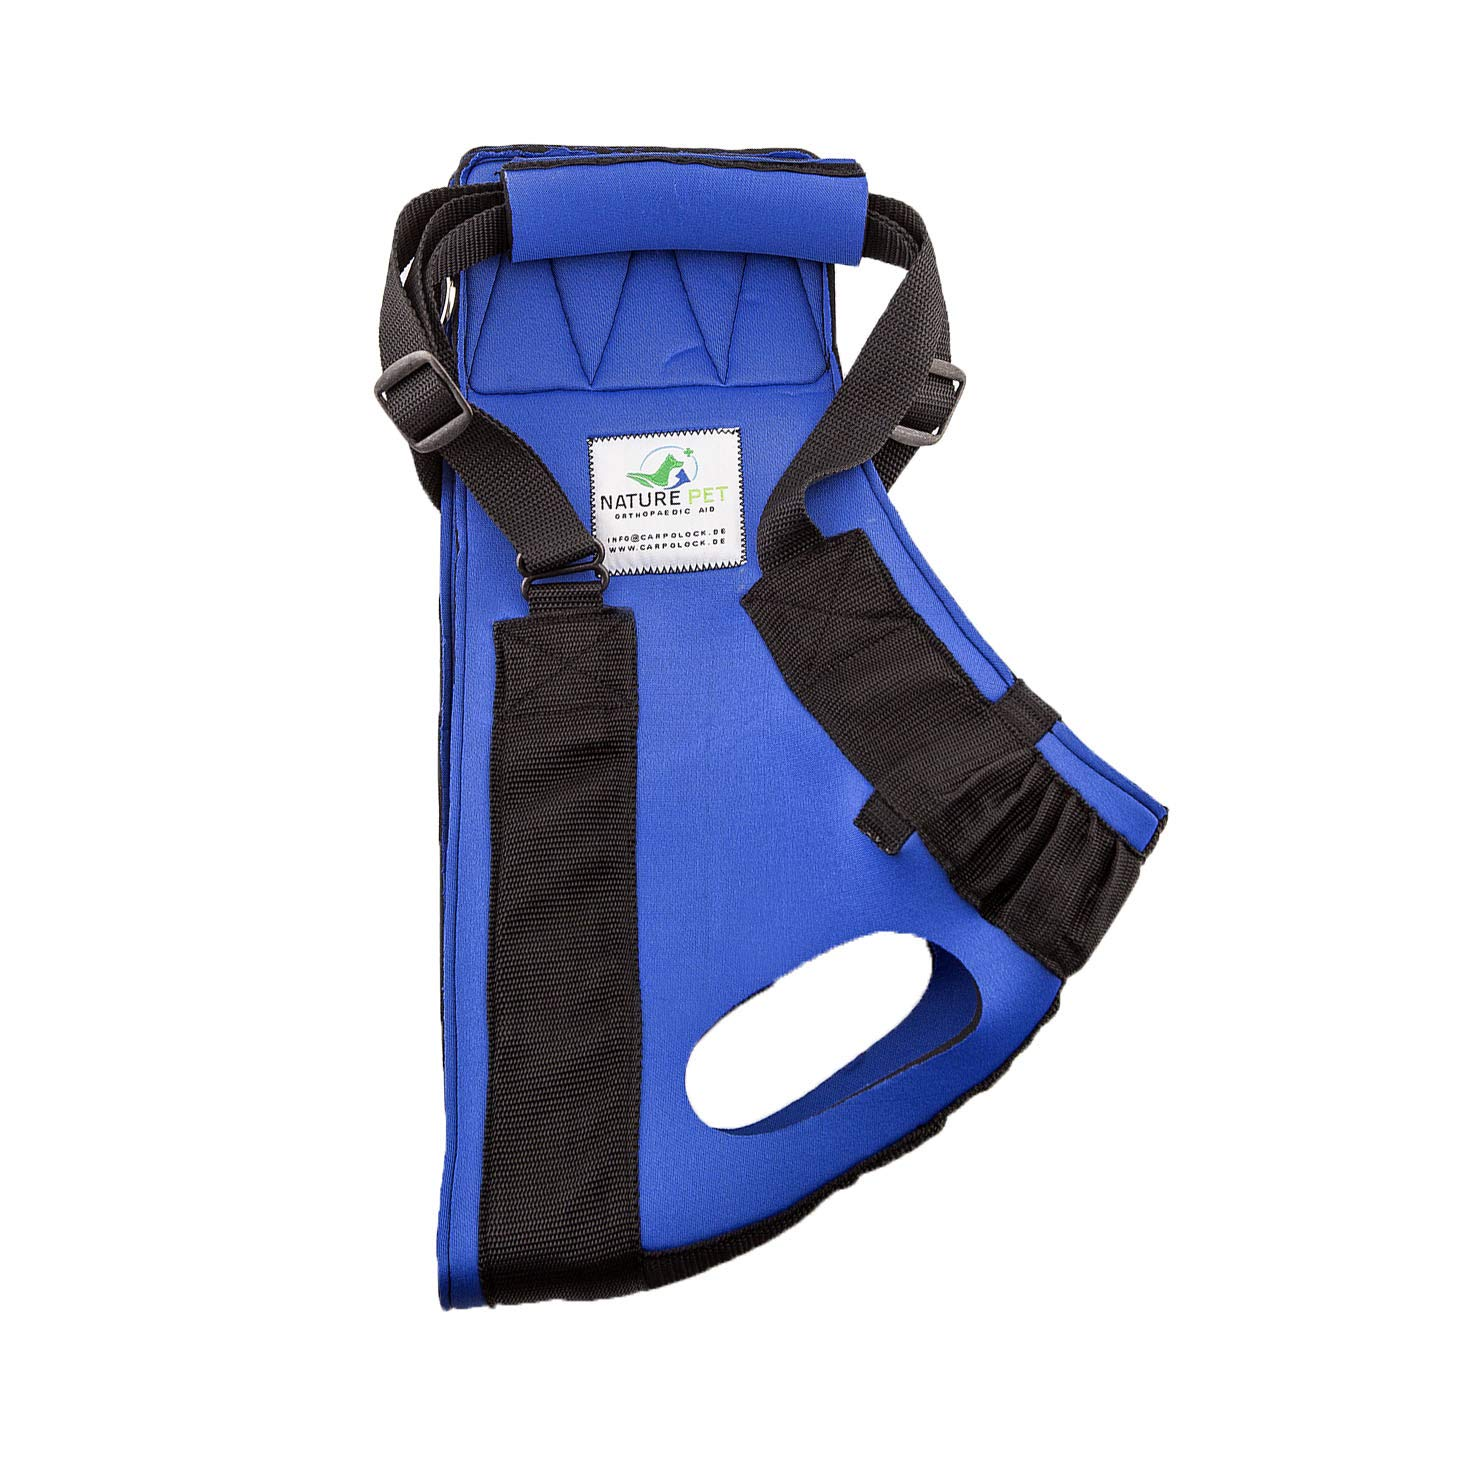 bluee XL bluee XL Nature Pet Medical Dog Front Carrier Harness Helping Harness for Elderly Dogs Dog Rehabilitation Aid Dog Front Lifting Harness (XL, bluee)